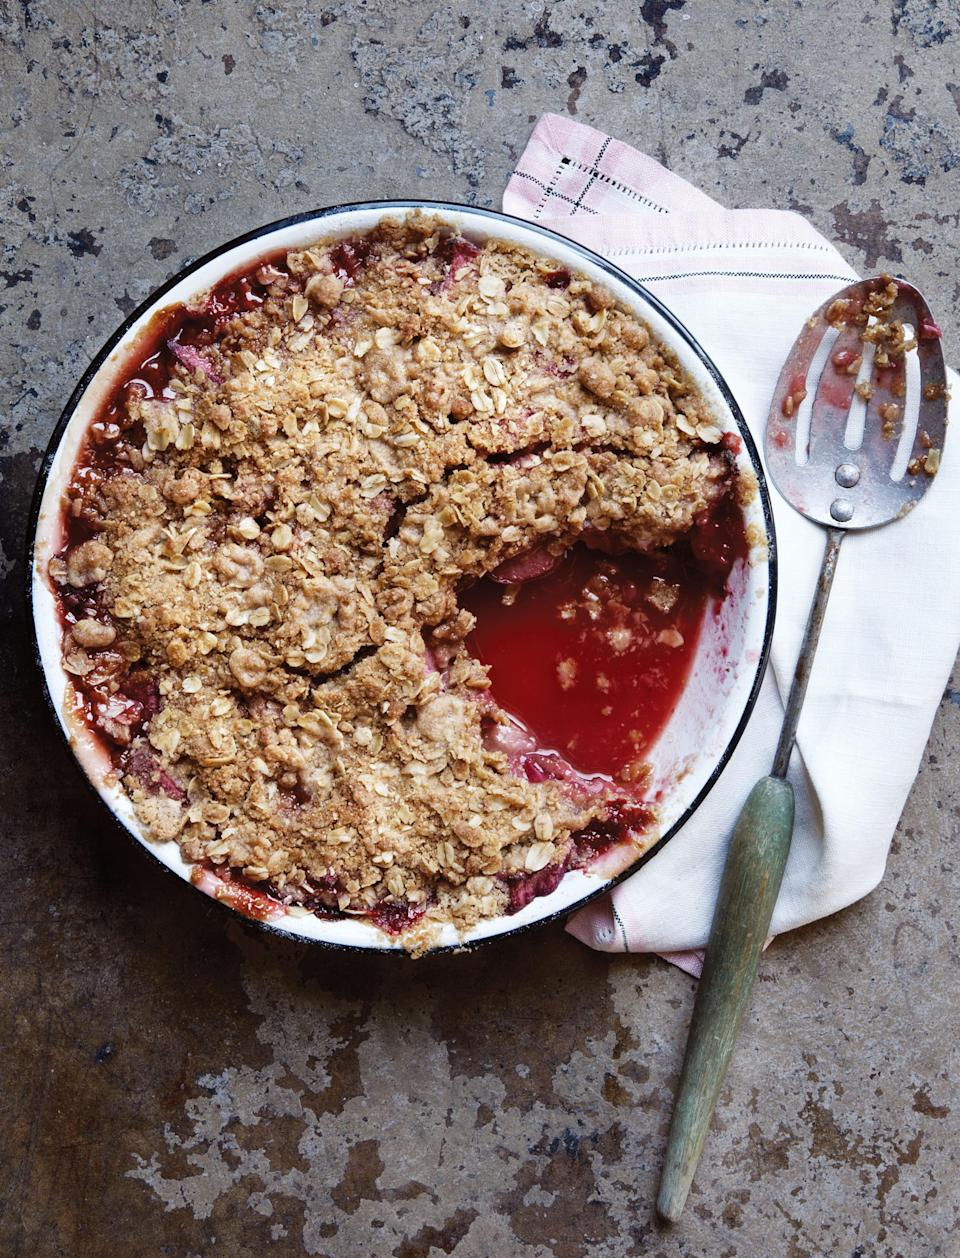 """The tender sweetness of summer-fresh strawberries paired with chunks of cherry-red rhubarb creates our favorite sweet-and-sour dessert. The buttery oatmeal topping adds a rustic goodness as the fruit juices bubble up through the crisp and over the sides. <a href=""""https://www.epicurious.com/recipes/food/views/strawberry-rhubarb-crisp-back-in-the-day?mbid=synd_yahoo_rss"""" rel=""""nofollow noopener"""" target=""""_blank"""" data-ylk=""""slk:See recipe."""" class=""""link rapid-noclick-resp"""">See recipe.</a>"""